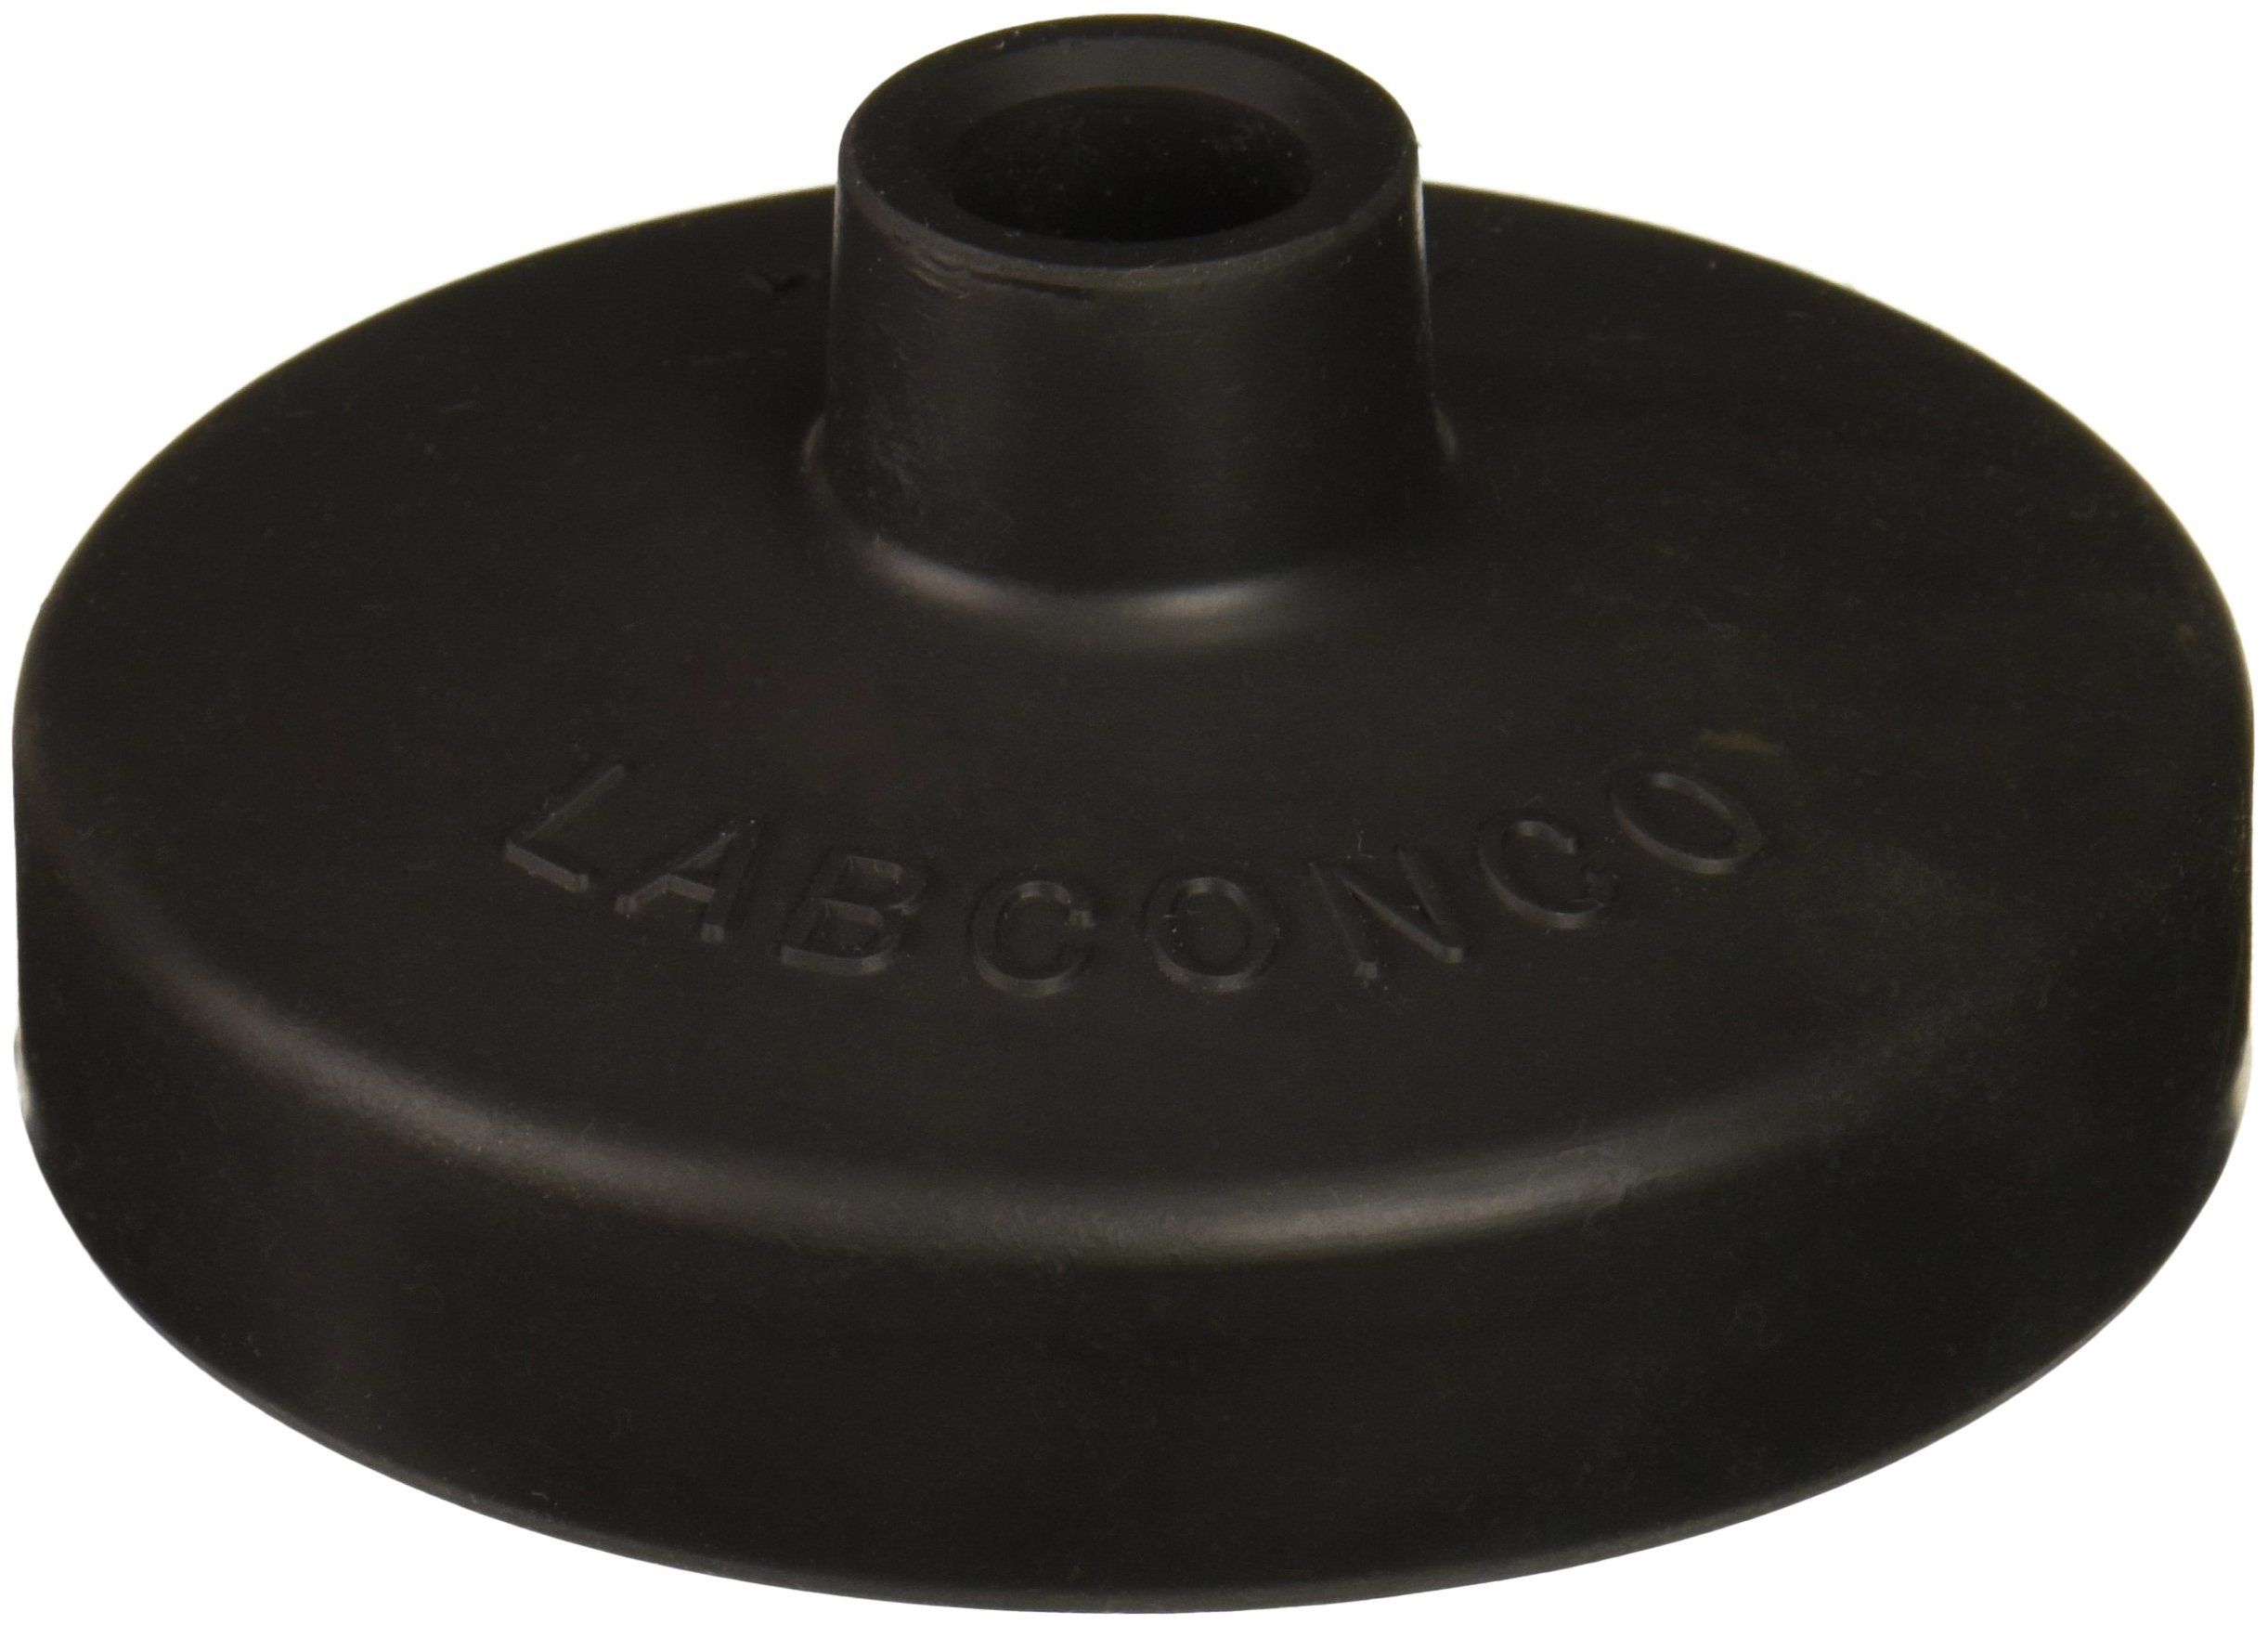 Labconco 7544400 Silicone Rubber Fast-Freeze Flask Top for 600ml, 900ml, 750ml, 1200ml and 2000ml Fast-Freeze Flask Bottom, 3/4'' Diameter